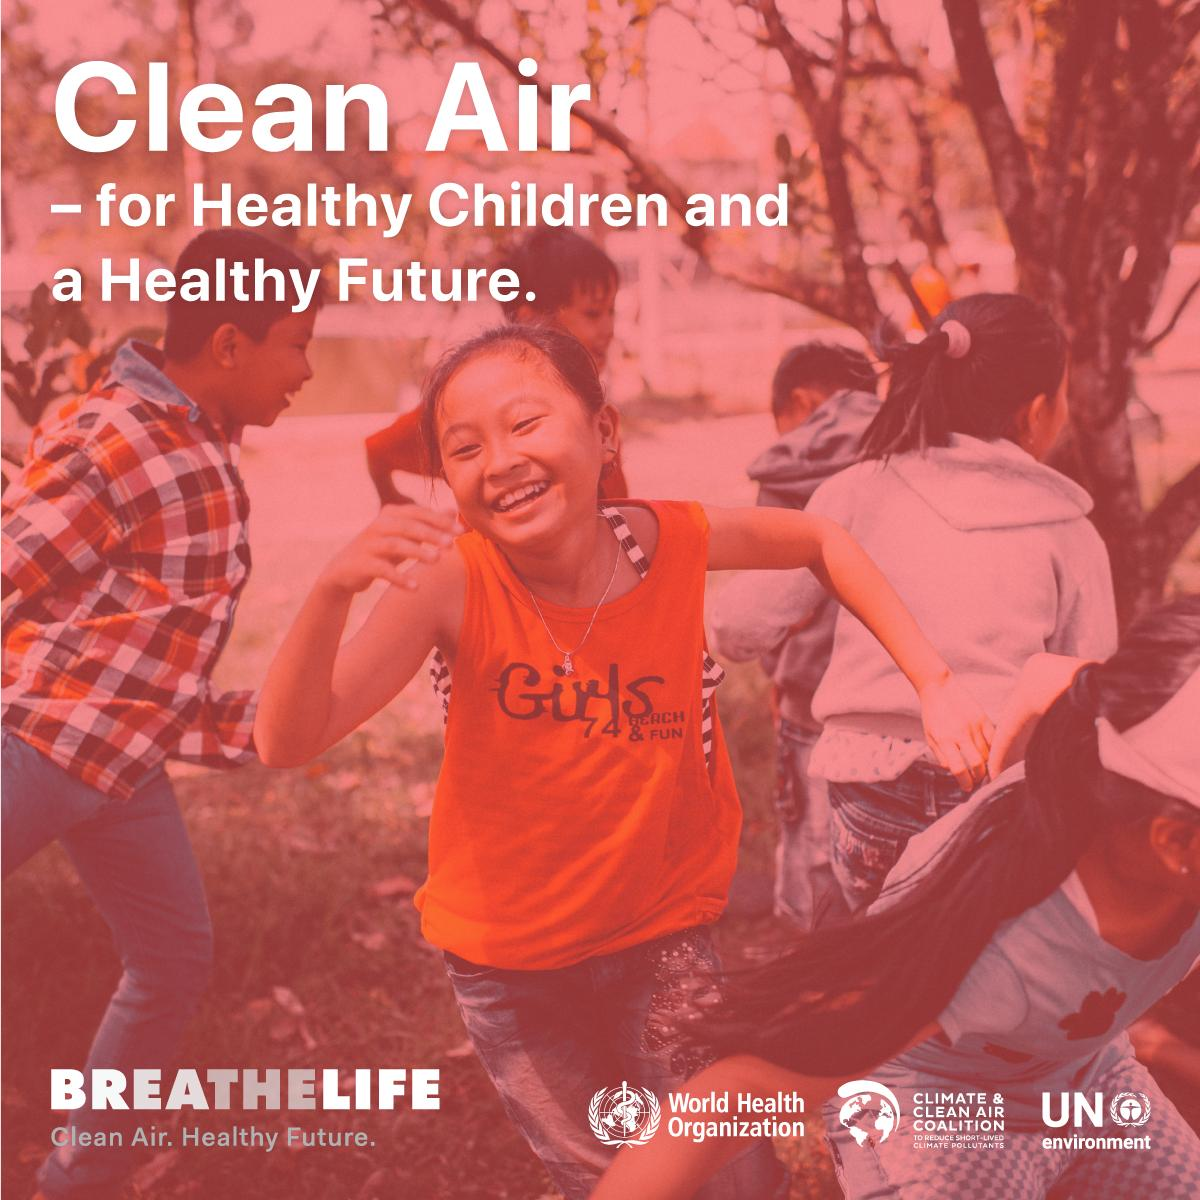 @WHOEMRO @WHOWPRO @pahowho @WHOSEARO @WHOAFRO @WHO_Europe Exposure to outdoor #AirPollution increases the risk of 👧👦 developing #asthma. Breathing pollutants in the air may also exacerbate childhood asthma. Clean air = Healthy future